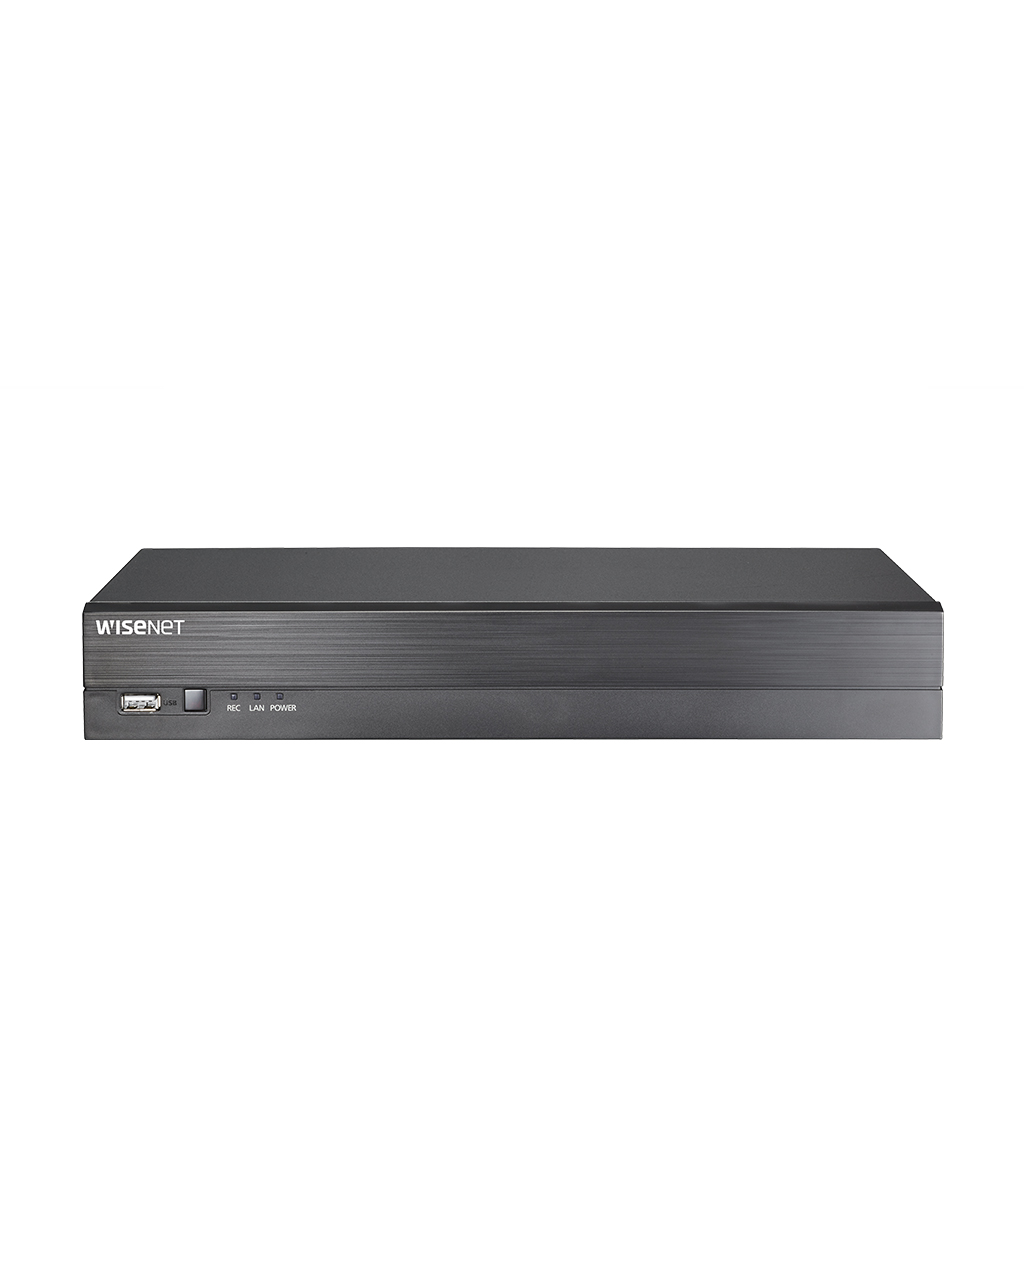 HRD-840P1T DVR 8IN HD+ 4MP AHD/TVI/HDCVI/CVBS C/HD 1TB INTEGR.